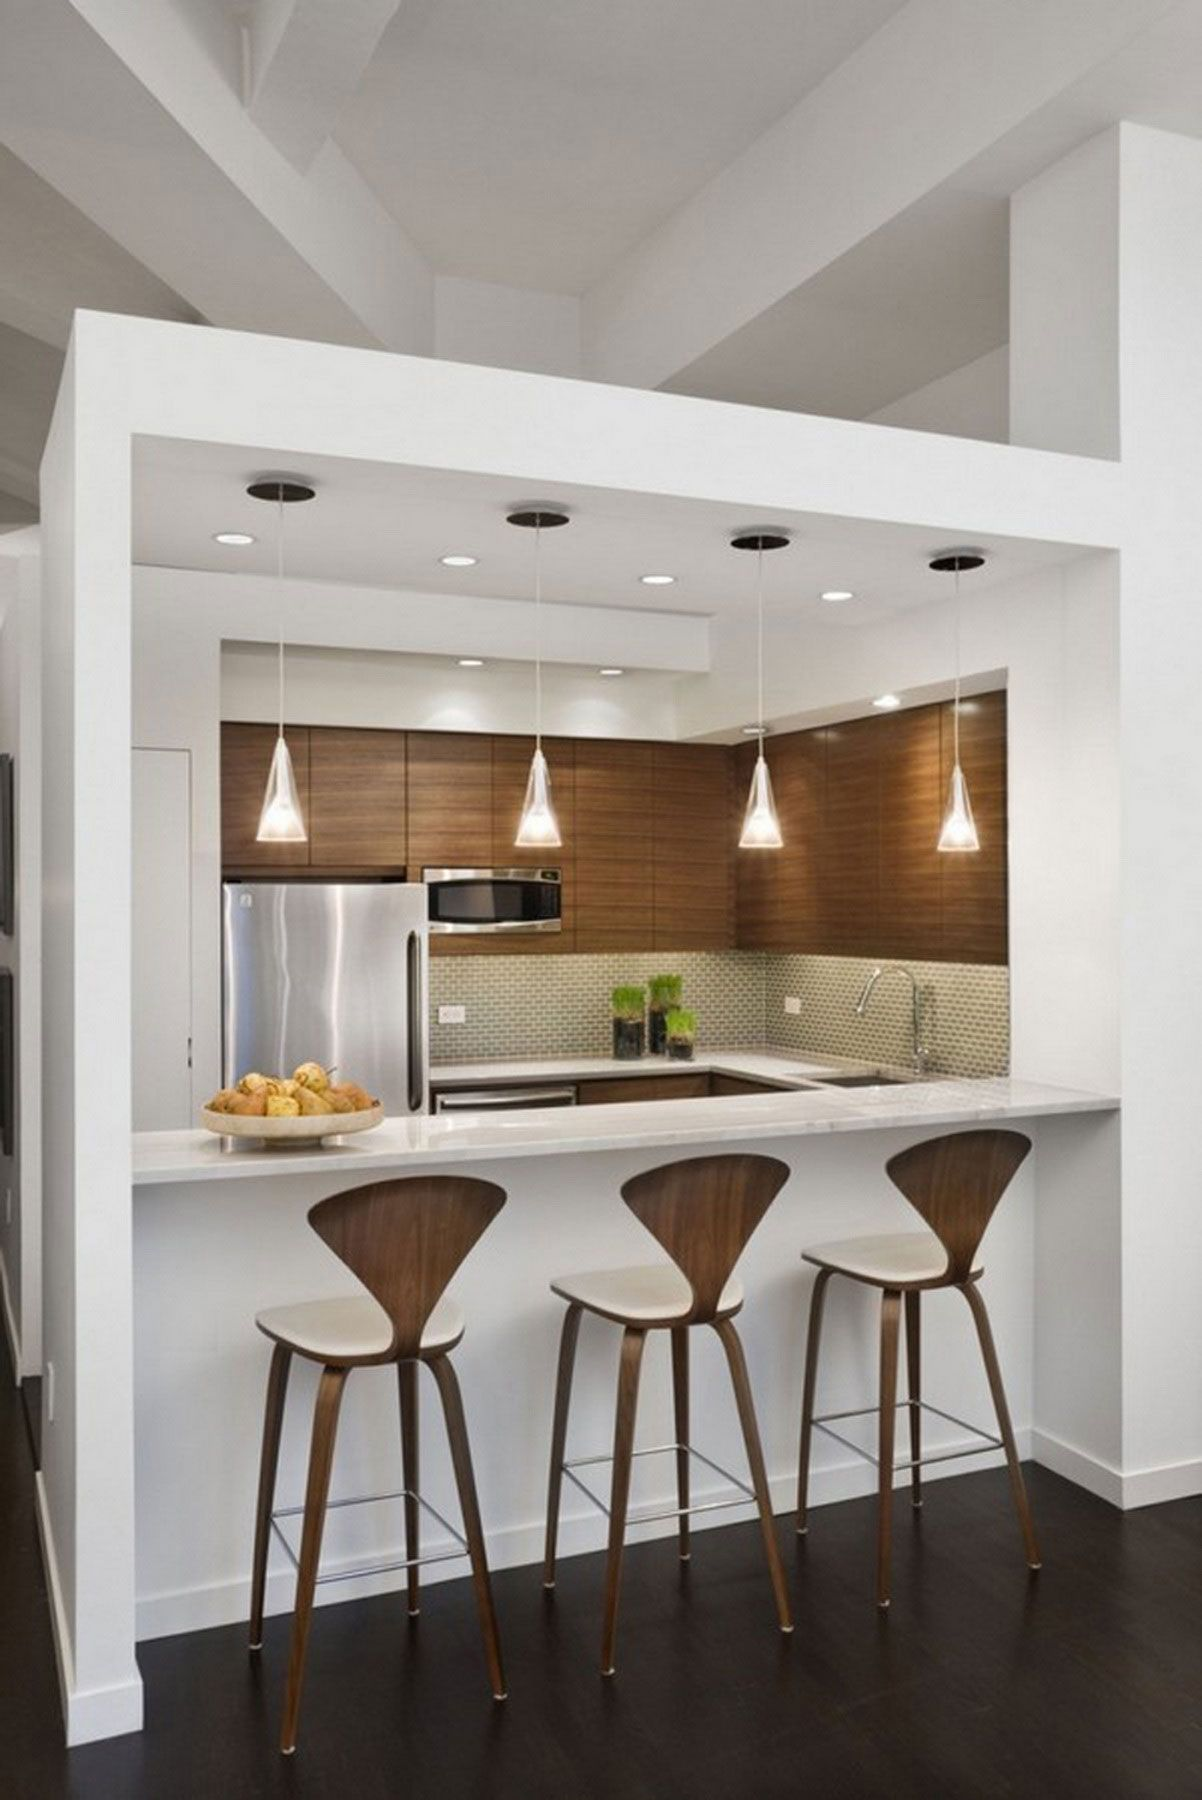 9+ Kitchen Ideas For Small Spaces   MAGZHOUSE